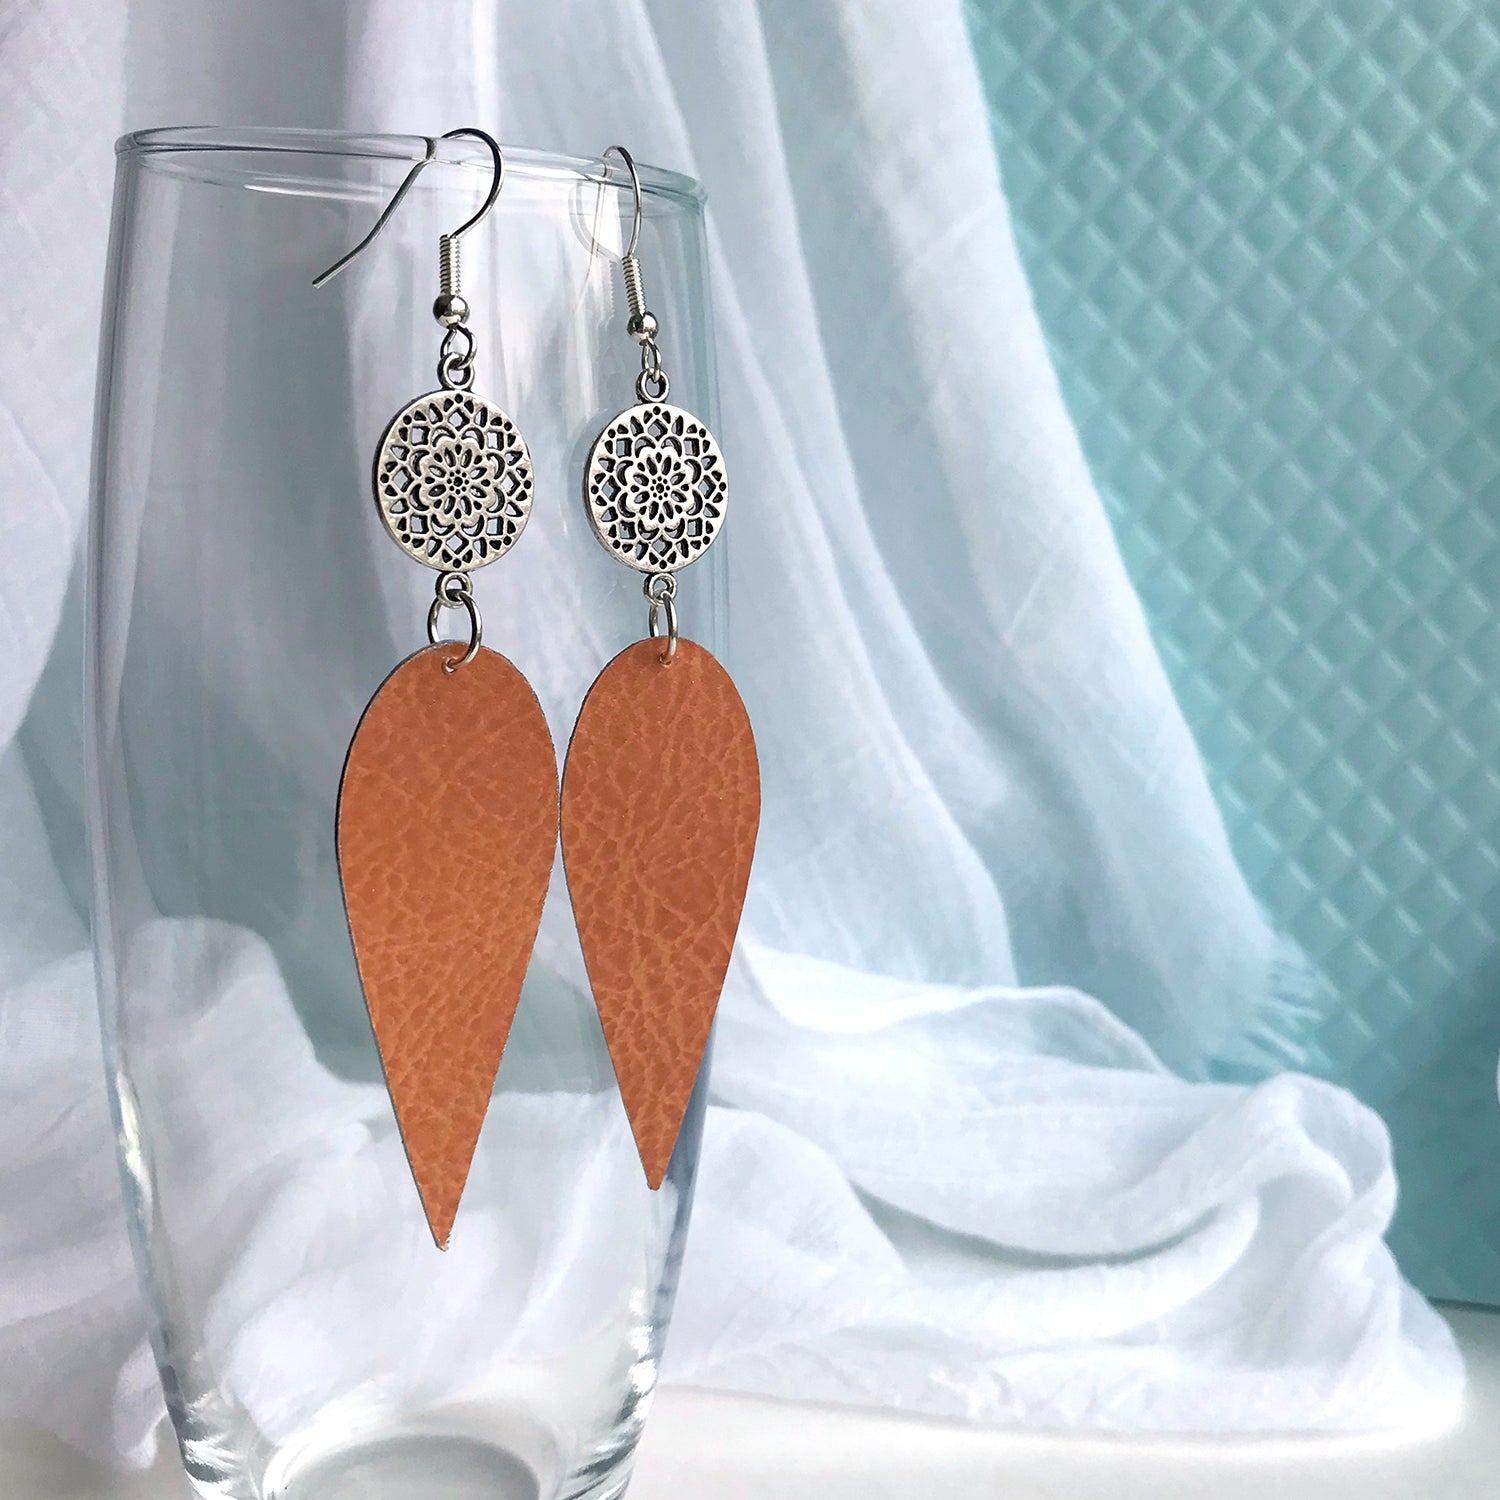 Gracie Nicole Handmade Jewelry. Silver Flower and Burnt Sienna Drop Earrings